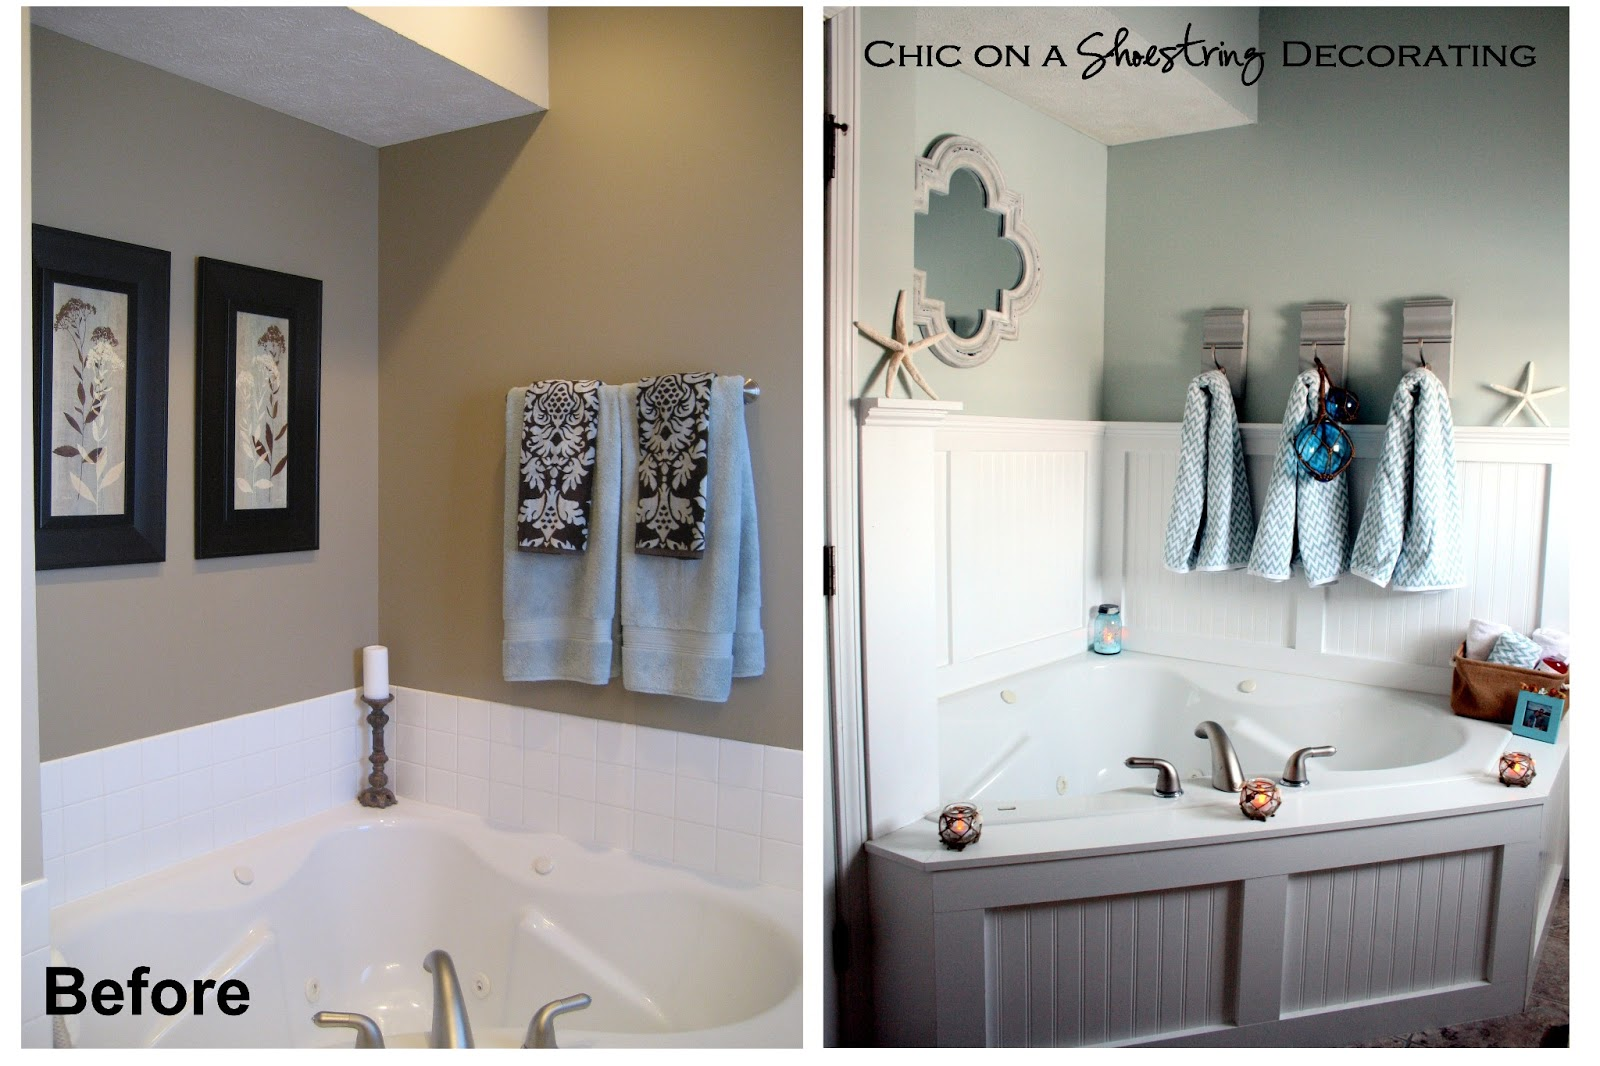 chic on a shoestring decorating: beachy bathroom reveal